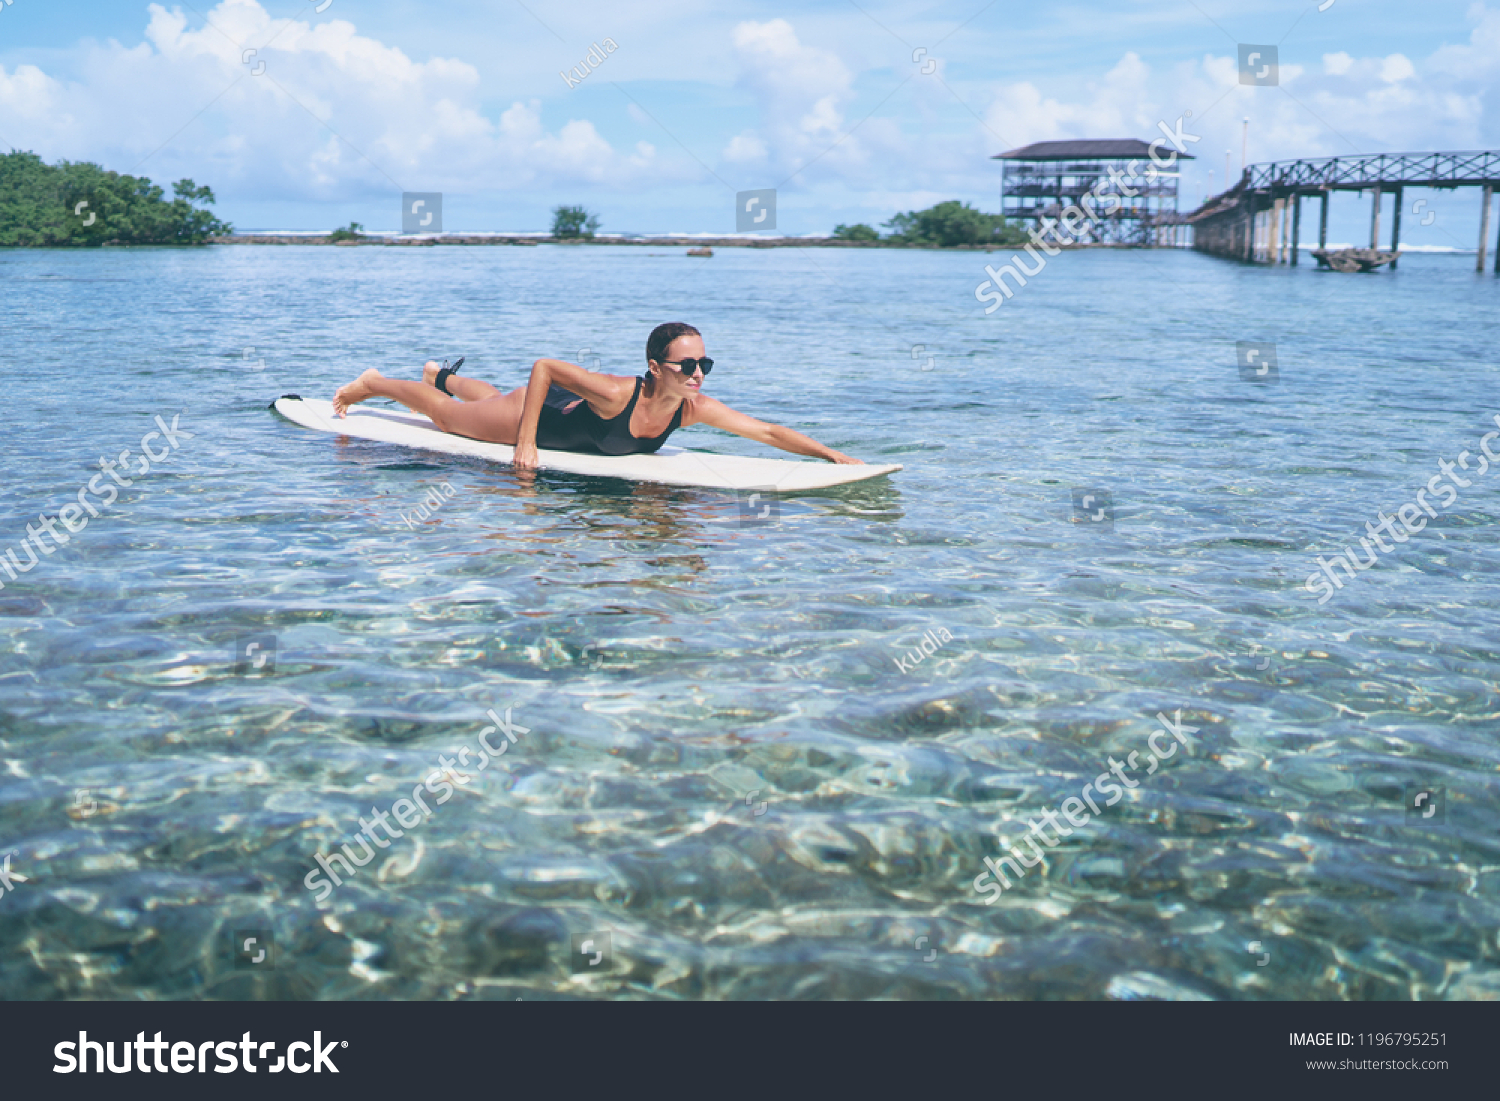 08d32adc3a7 Hobby and vacation. Sunny holiday on the beach. Young surfer woman surfing  having fun